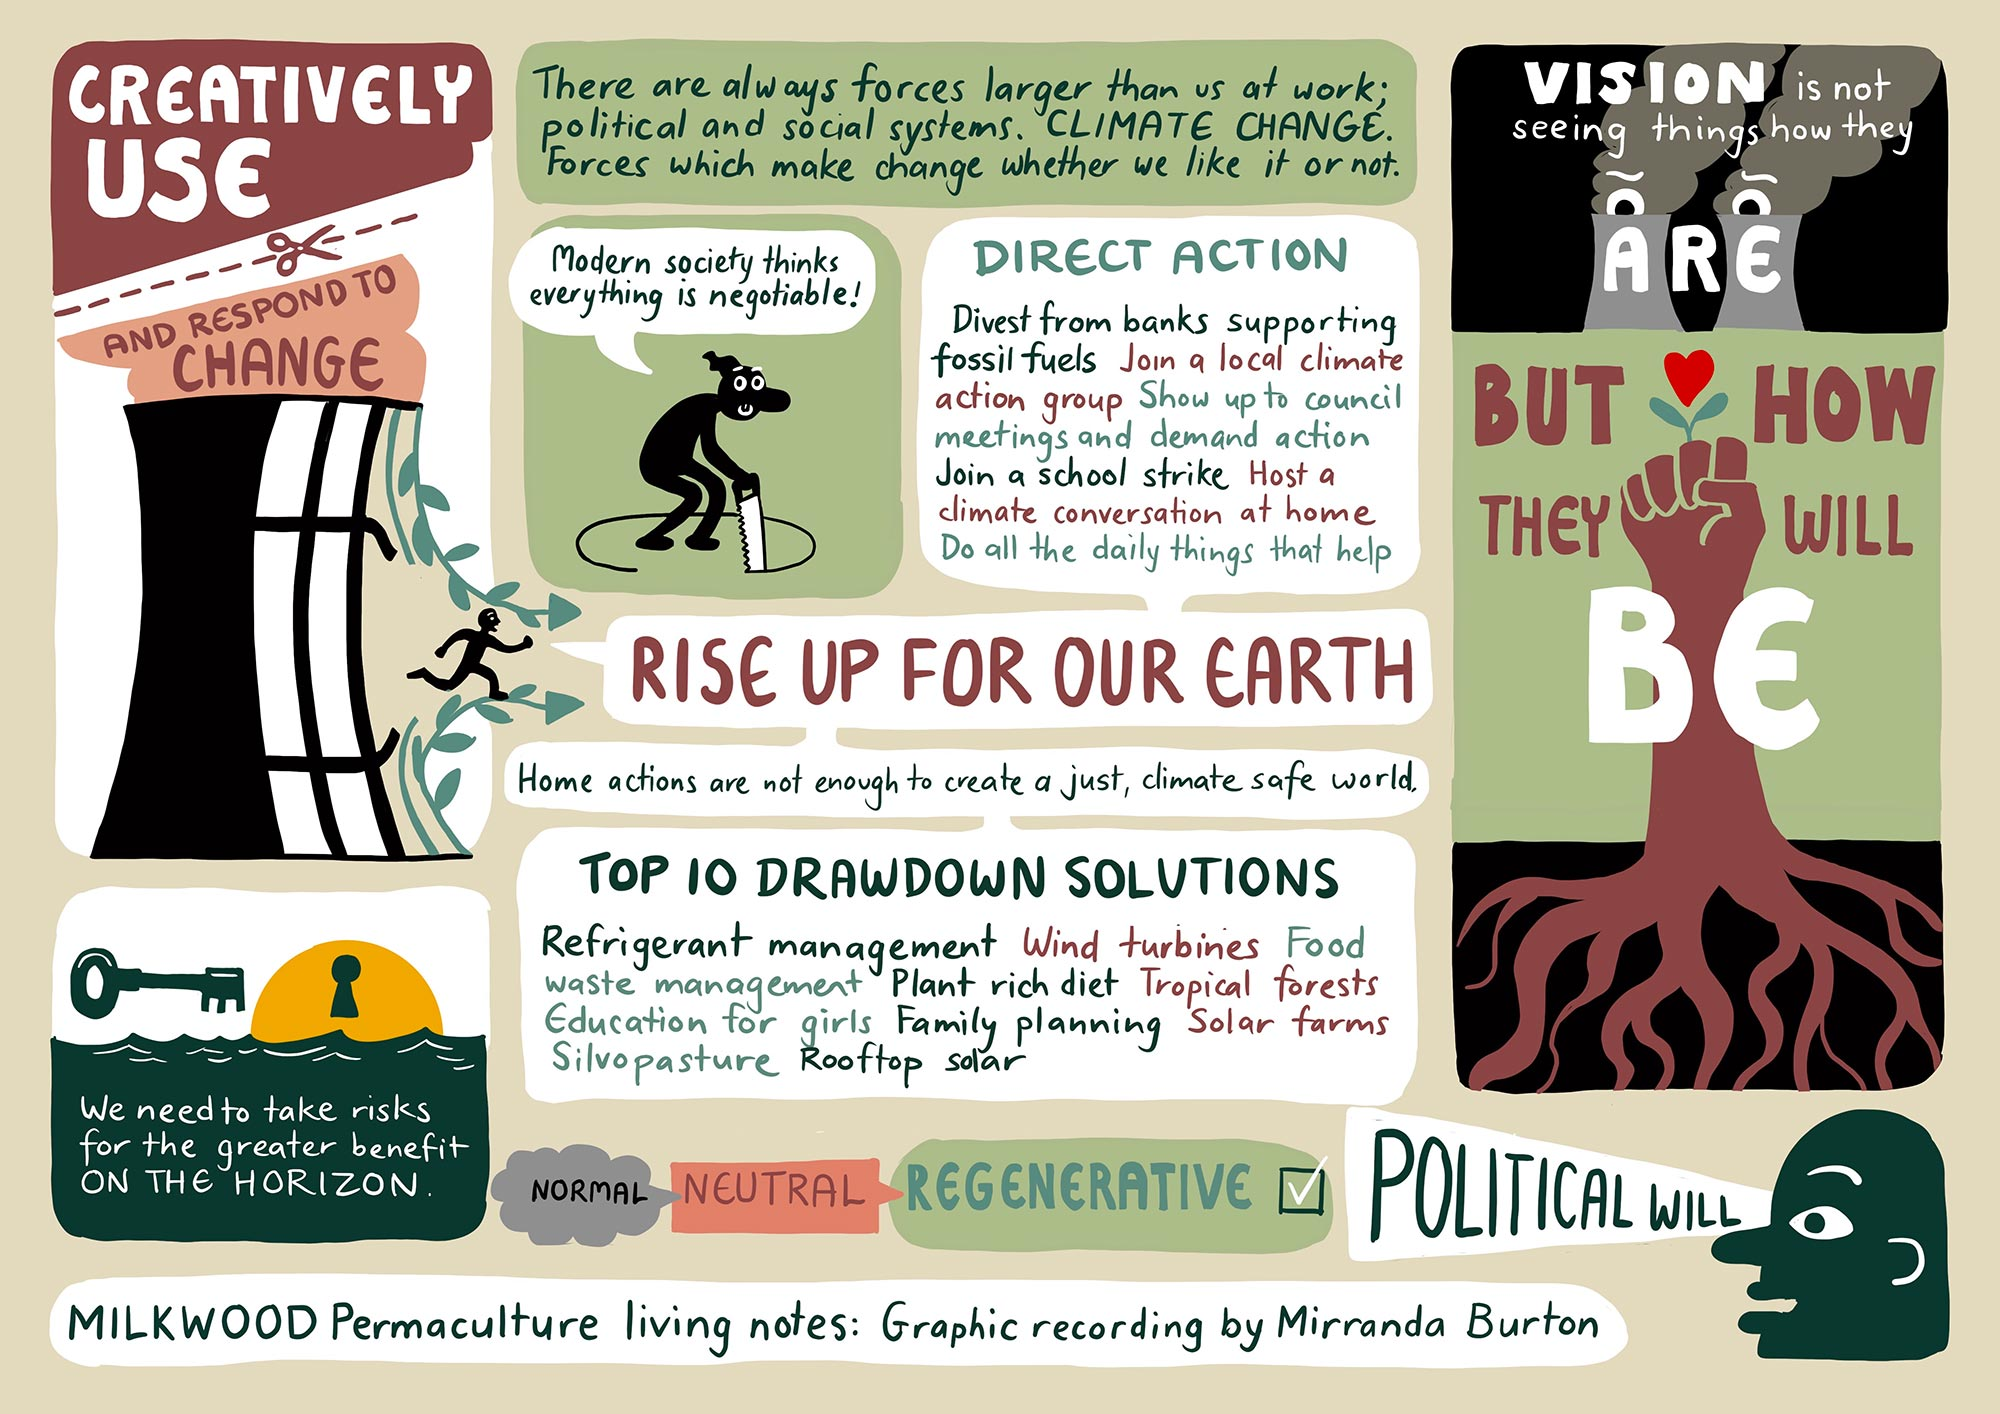 Permaculture principle #12 - Creatively Use and Respond to Change